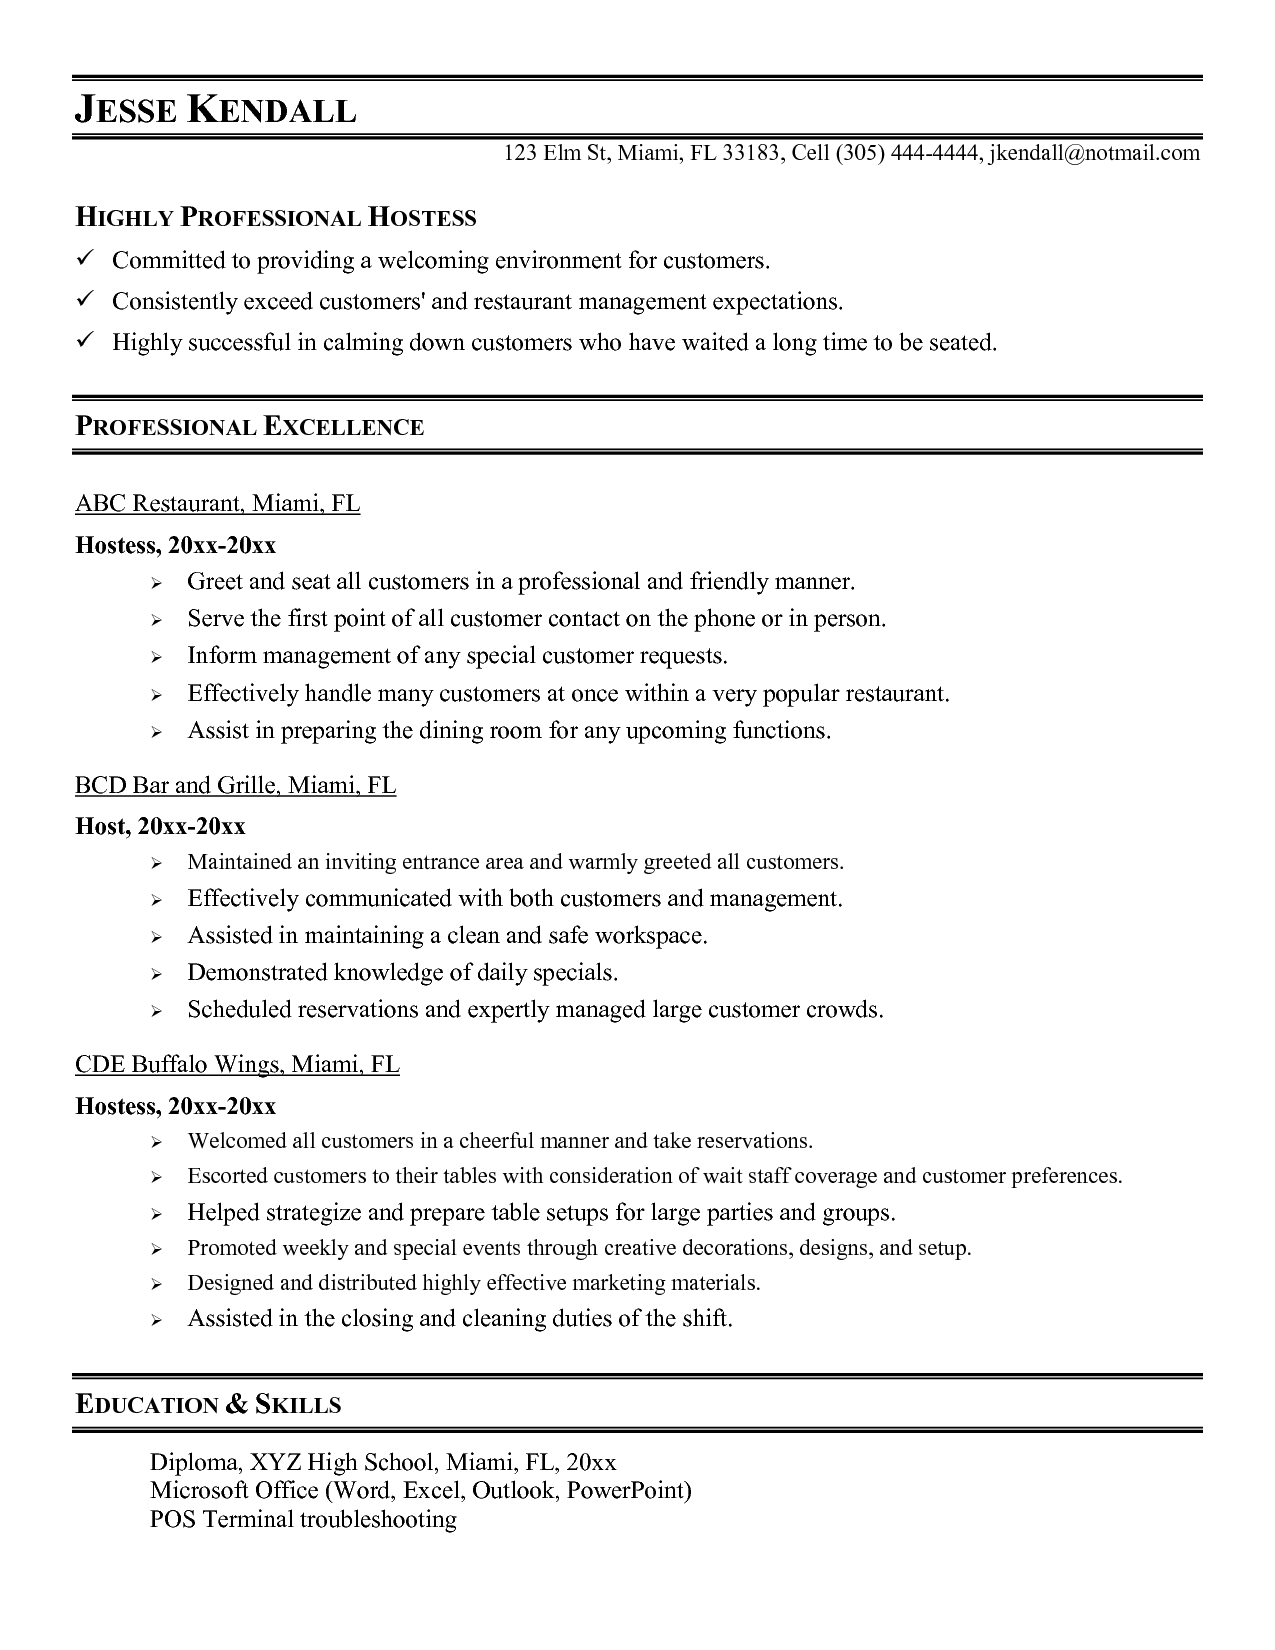 Resume Vip Host Resume vip hostess cover letter progress reporting template radio host resume sample restaurant job description highly professional hostess